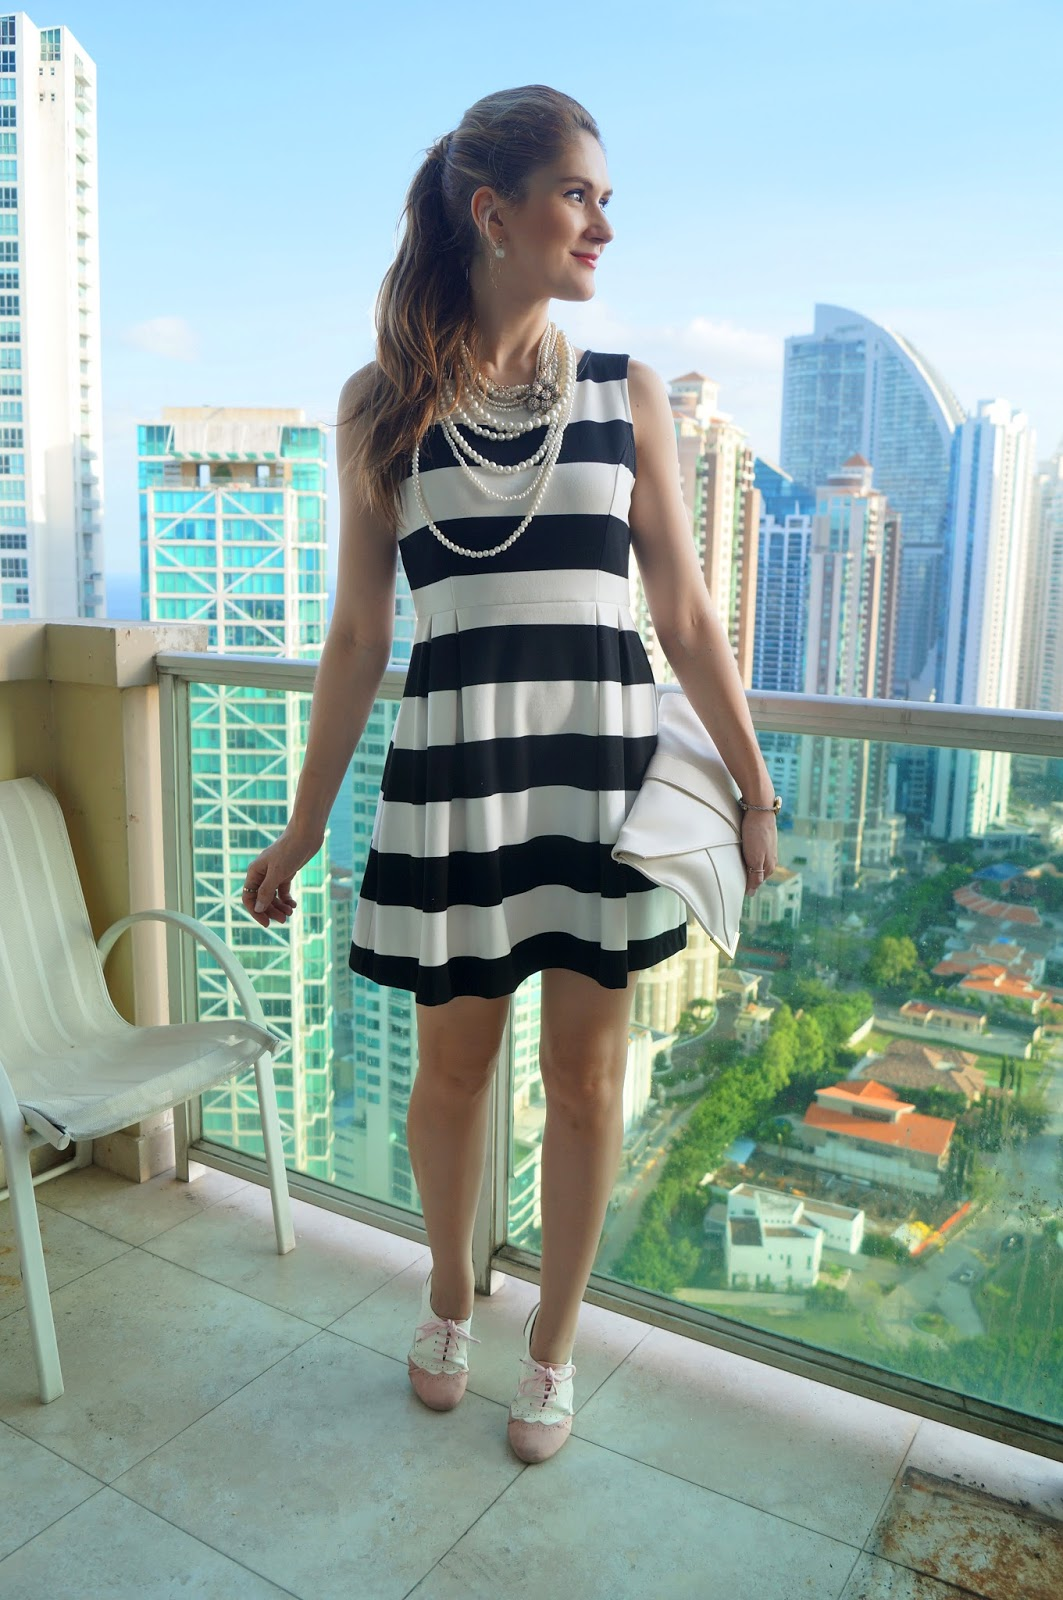 Pair a Striped dress with pearls for a classic chic outfit!